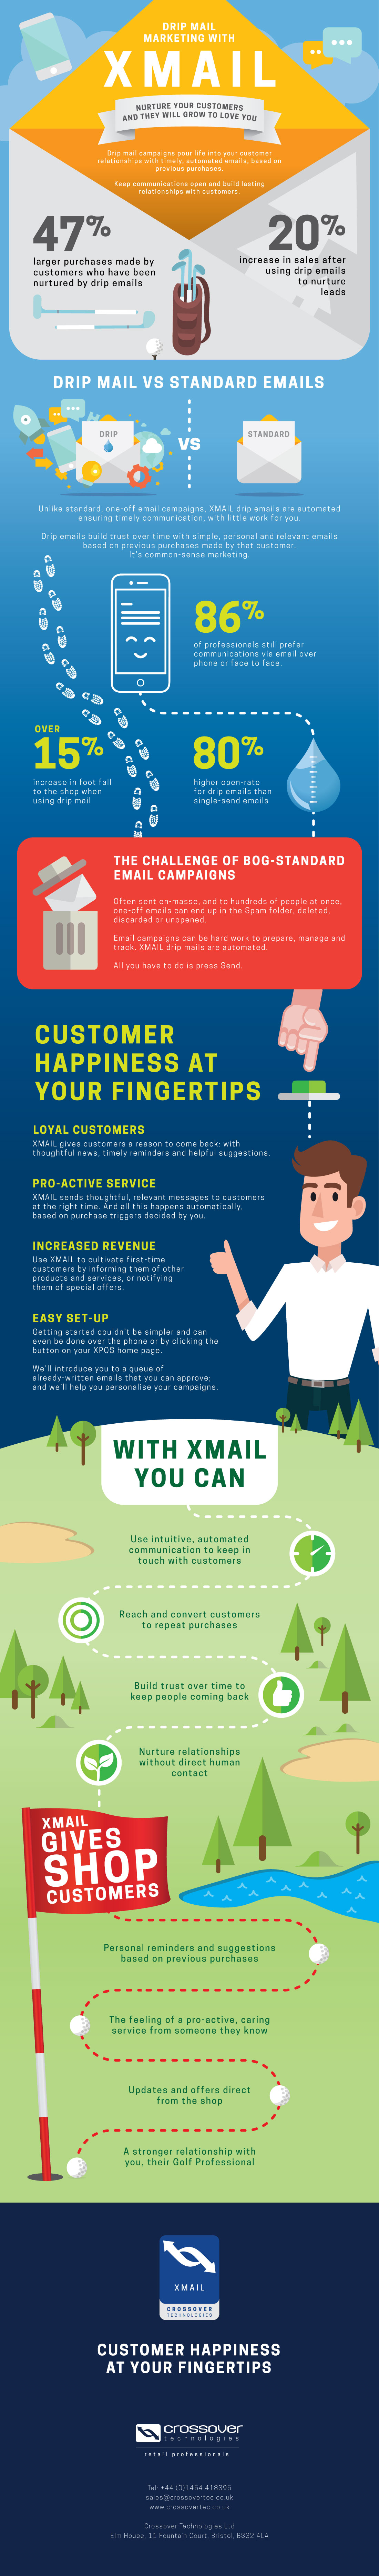 Drip Mail Marketing with XMAIL